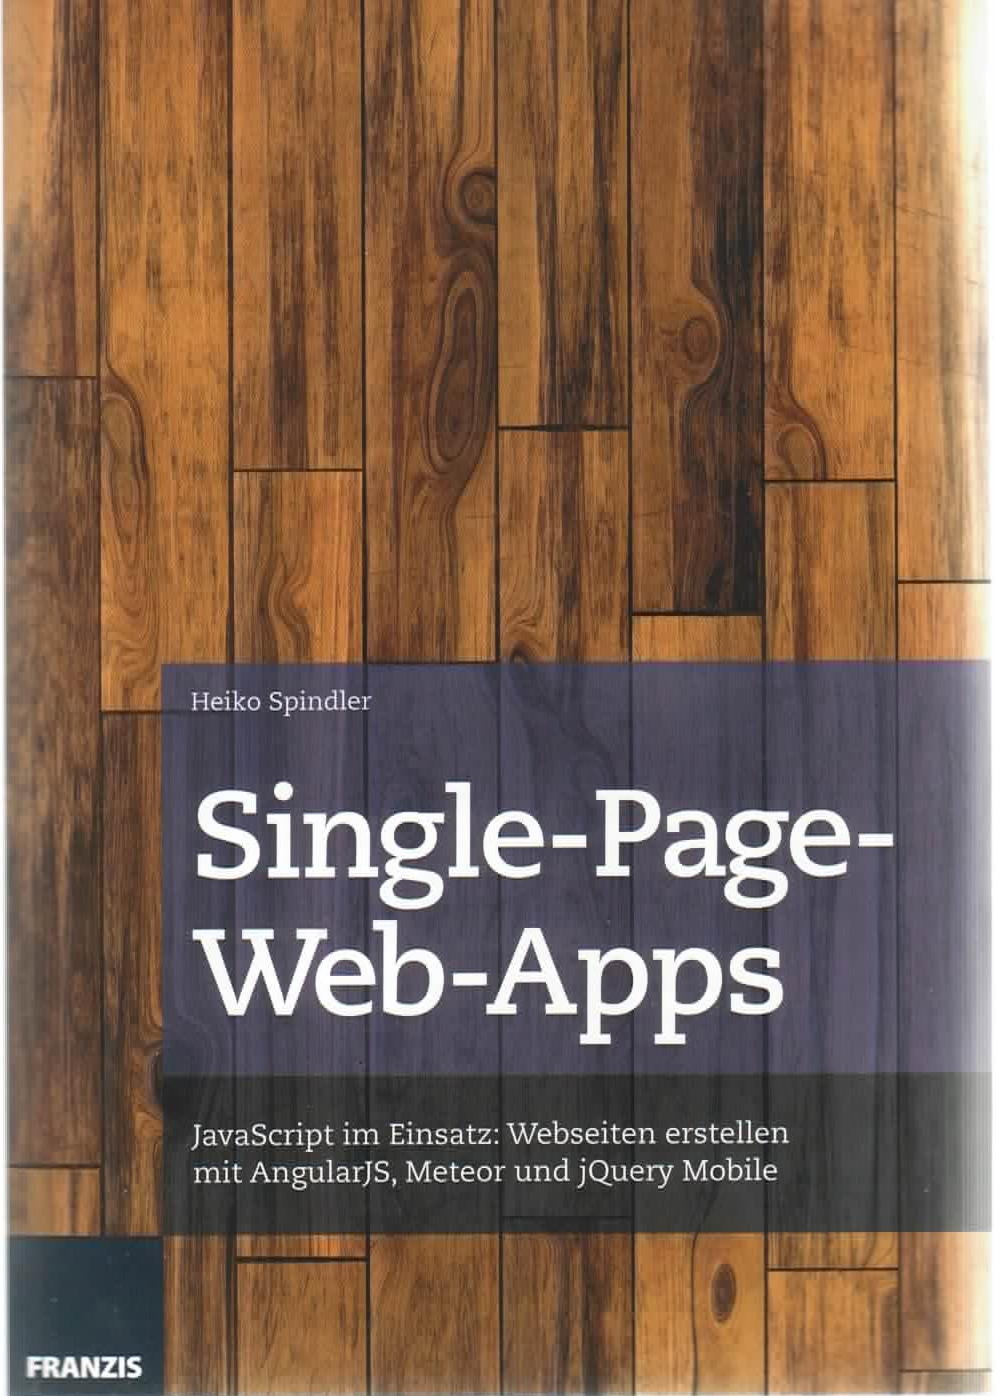 Bild Cover Buch Single-Page-Web-Apps A-Seite